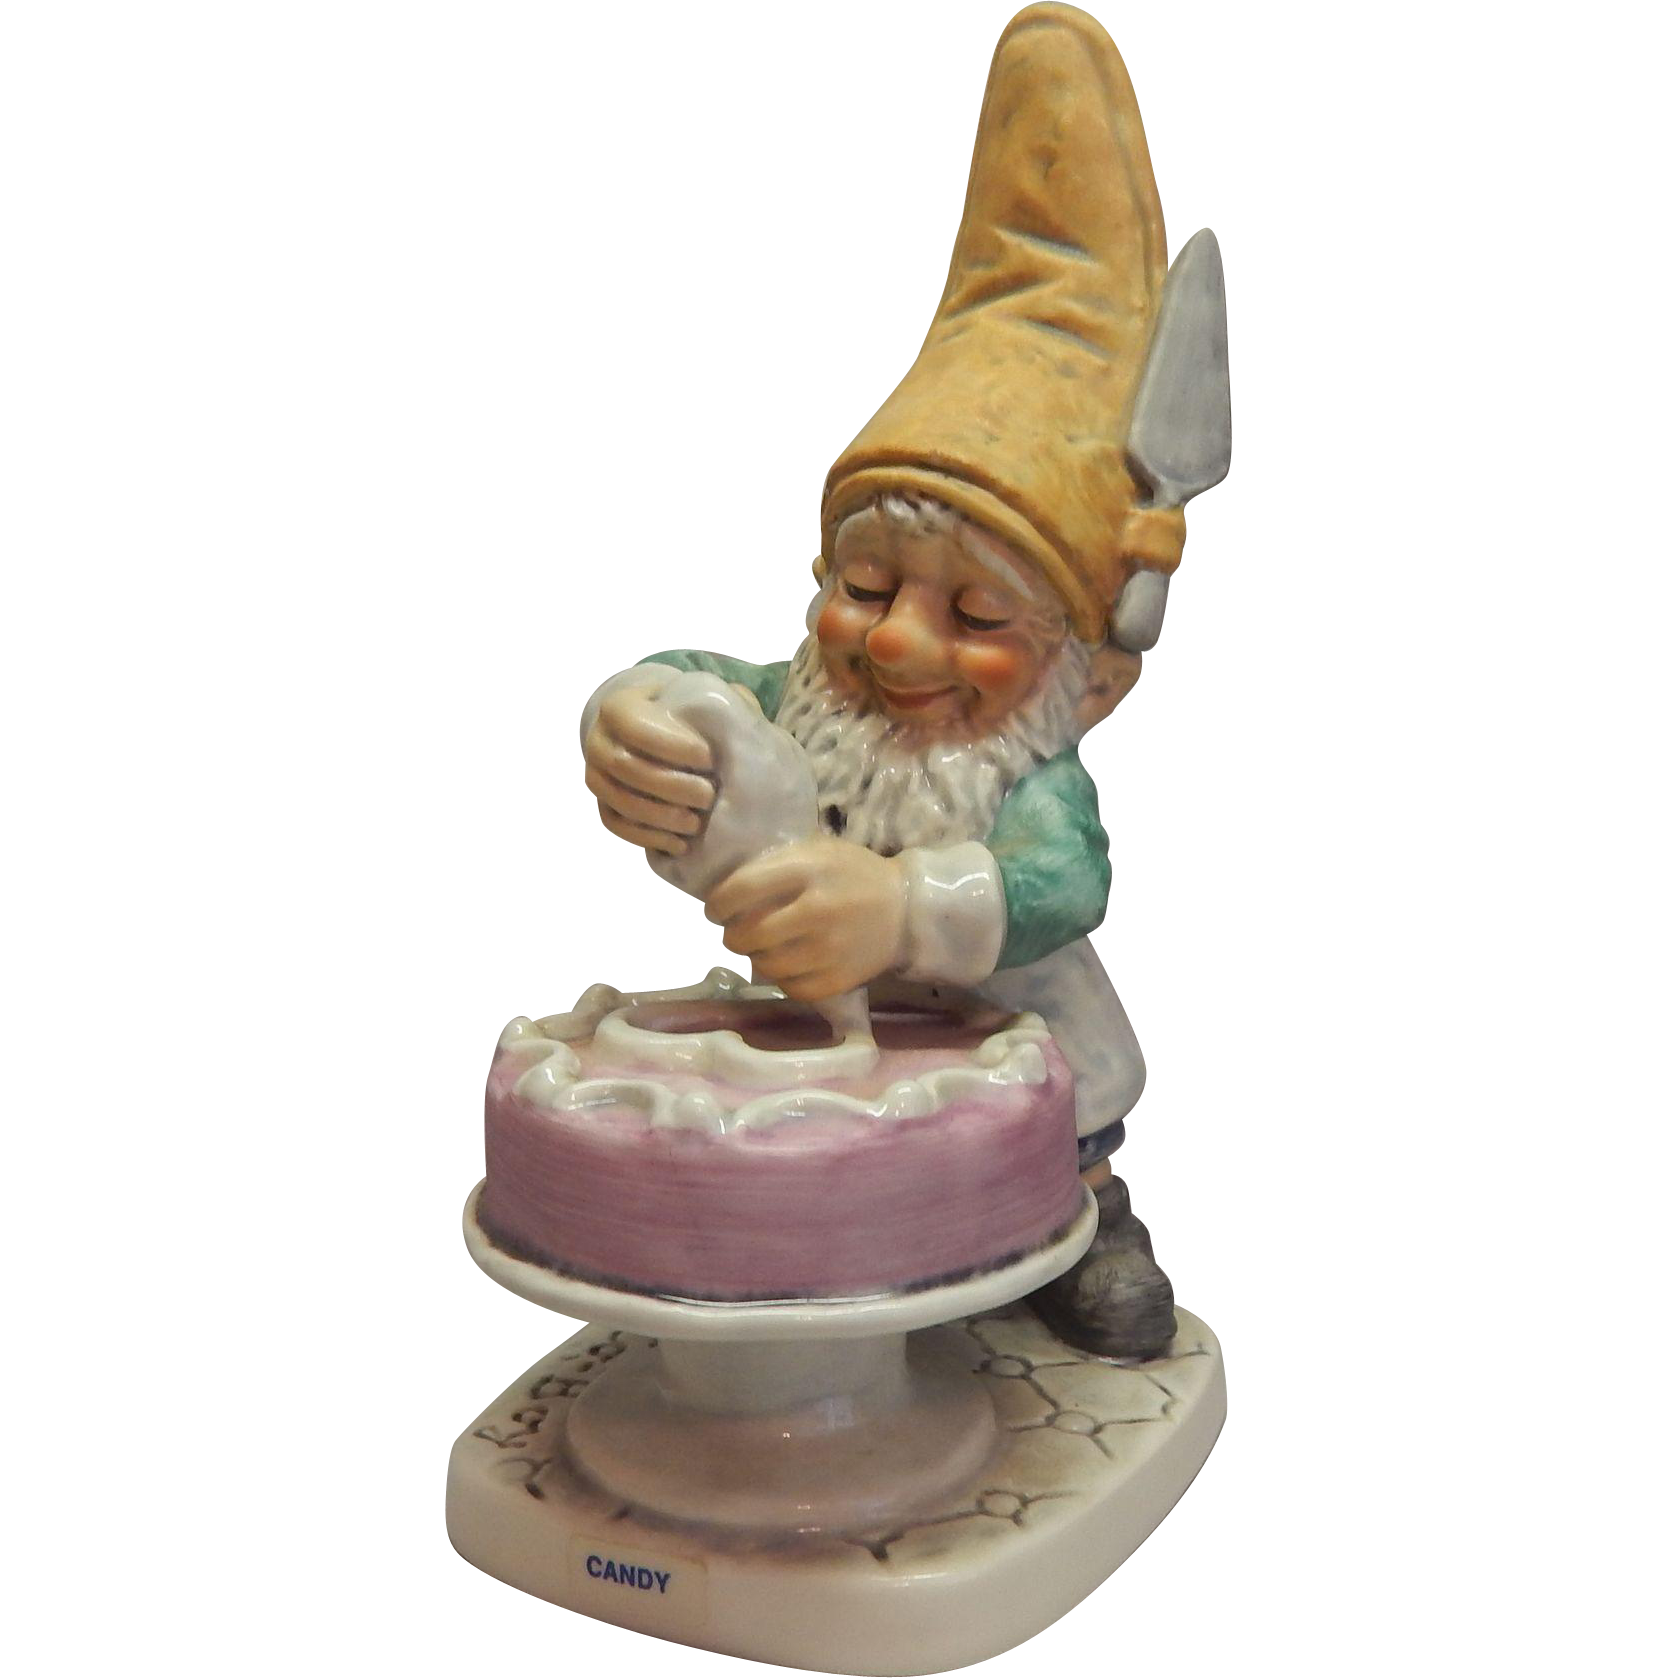 Goebel Co-Boy Candy The Confectioner Gnome Figurine